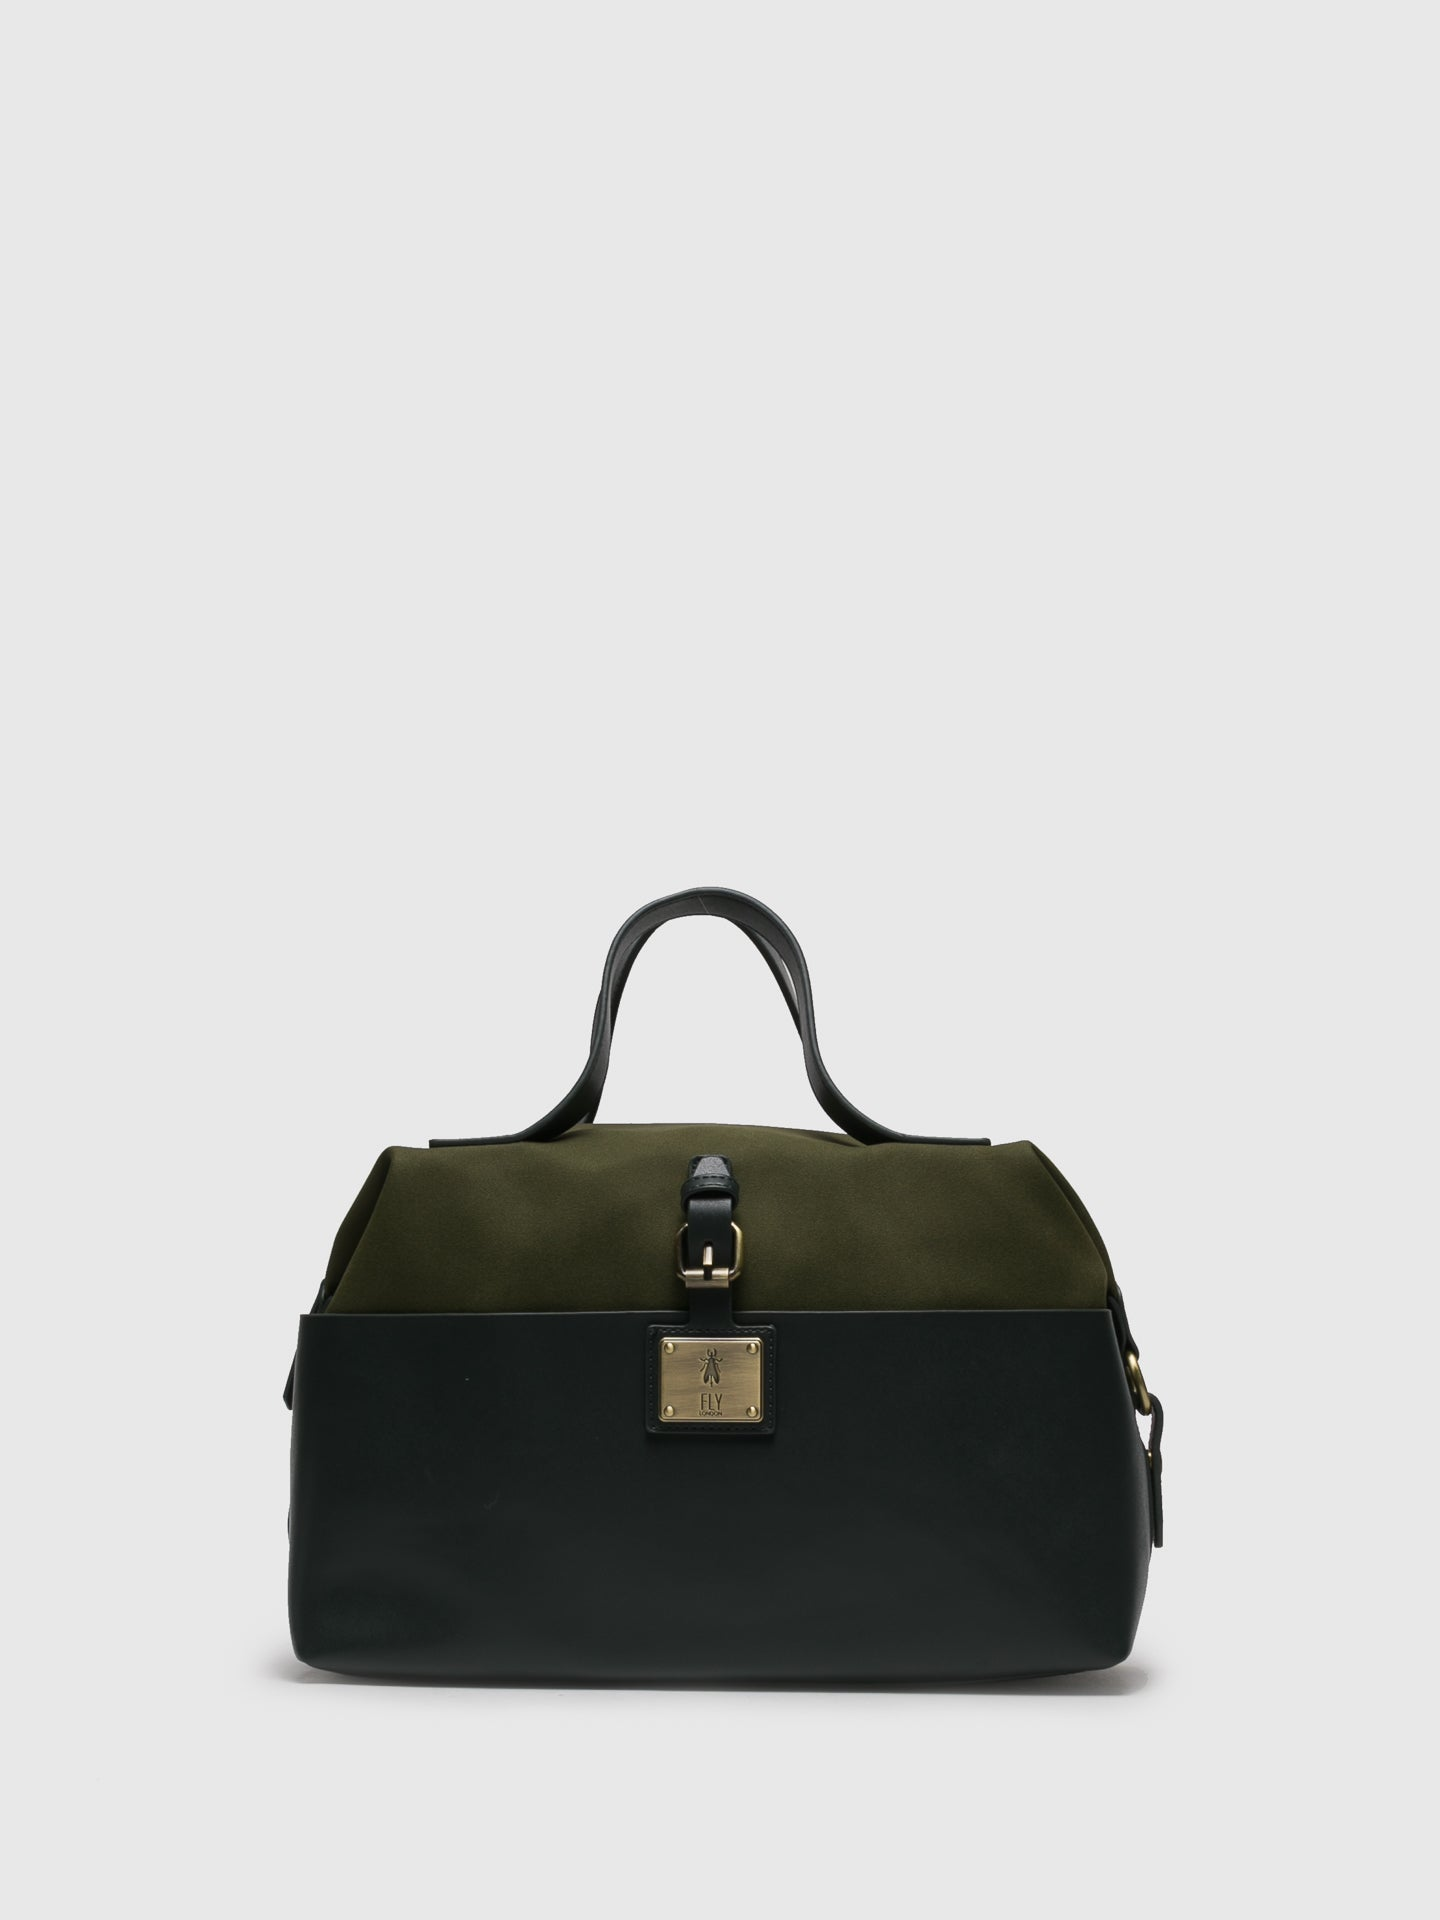 Fly London Handtasche in Vert